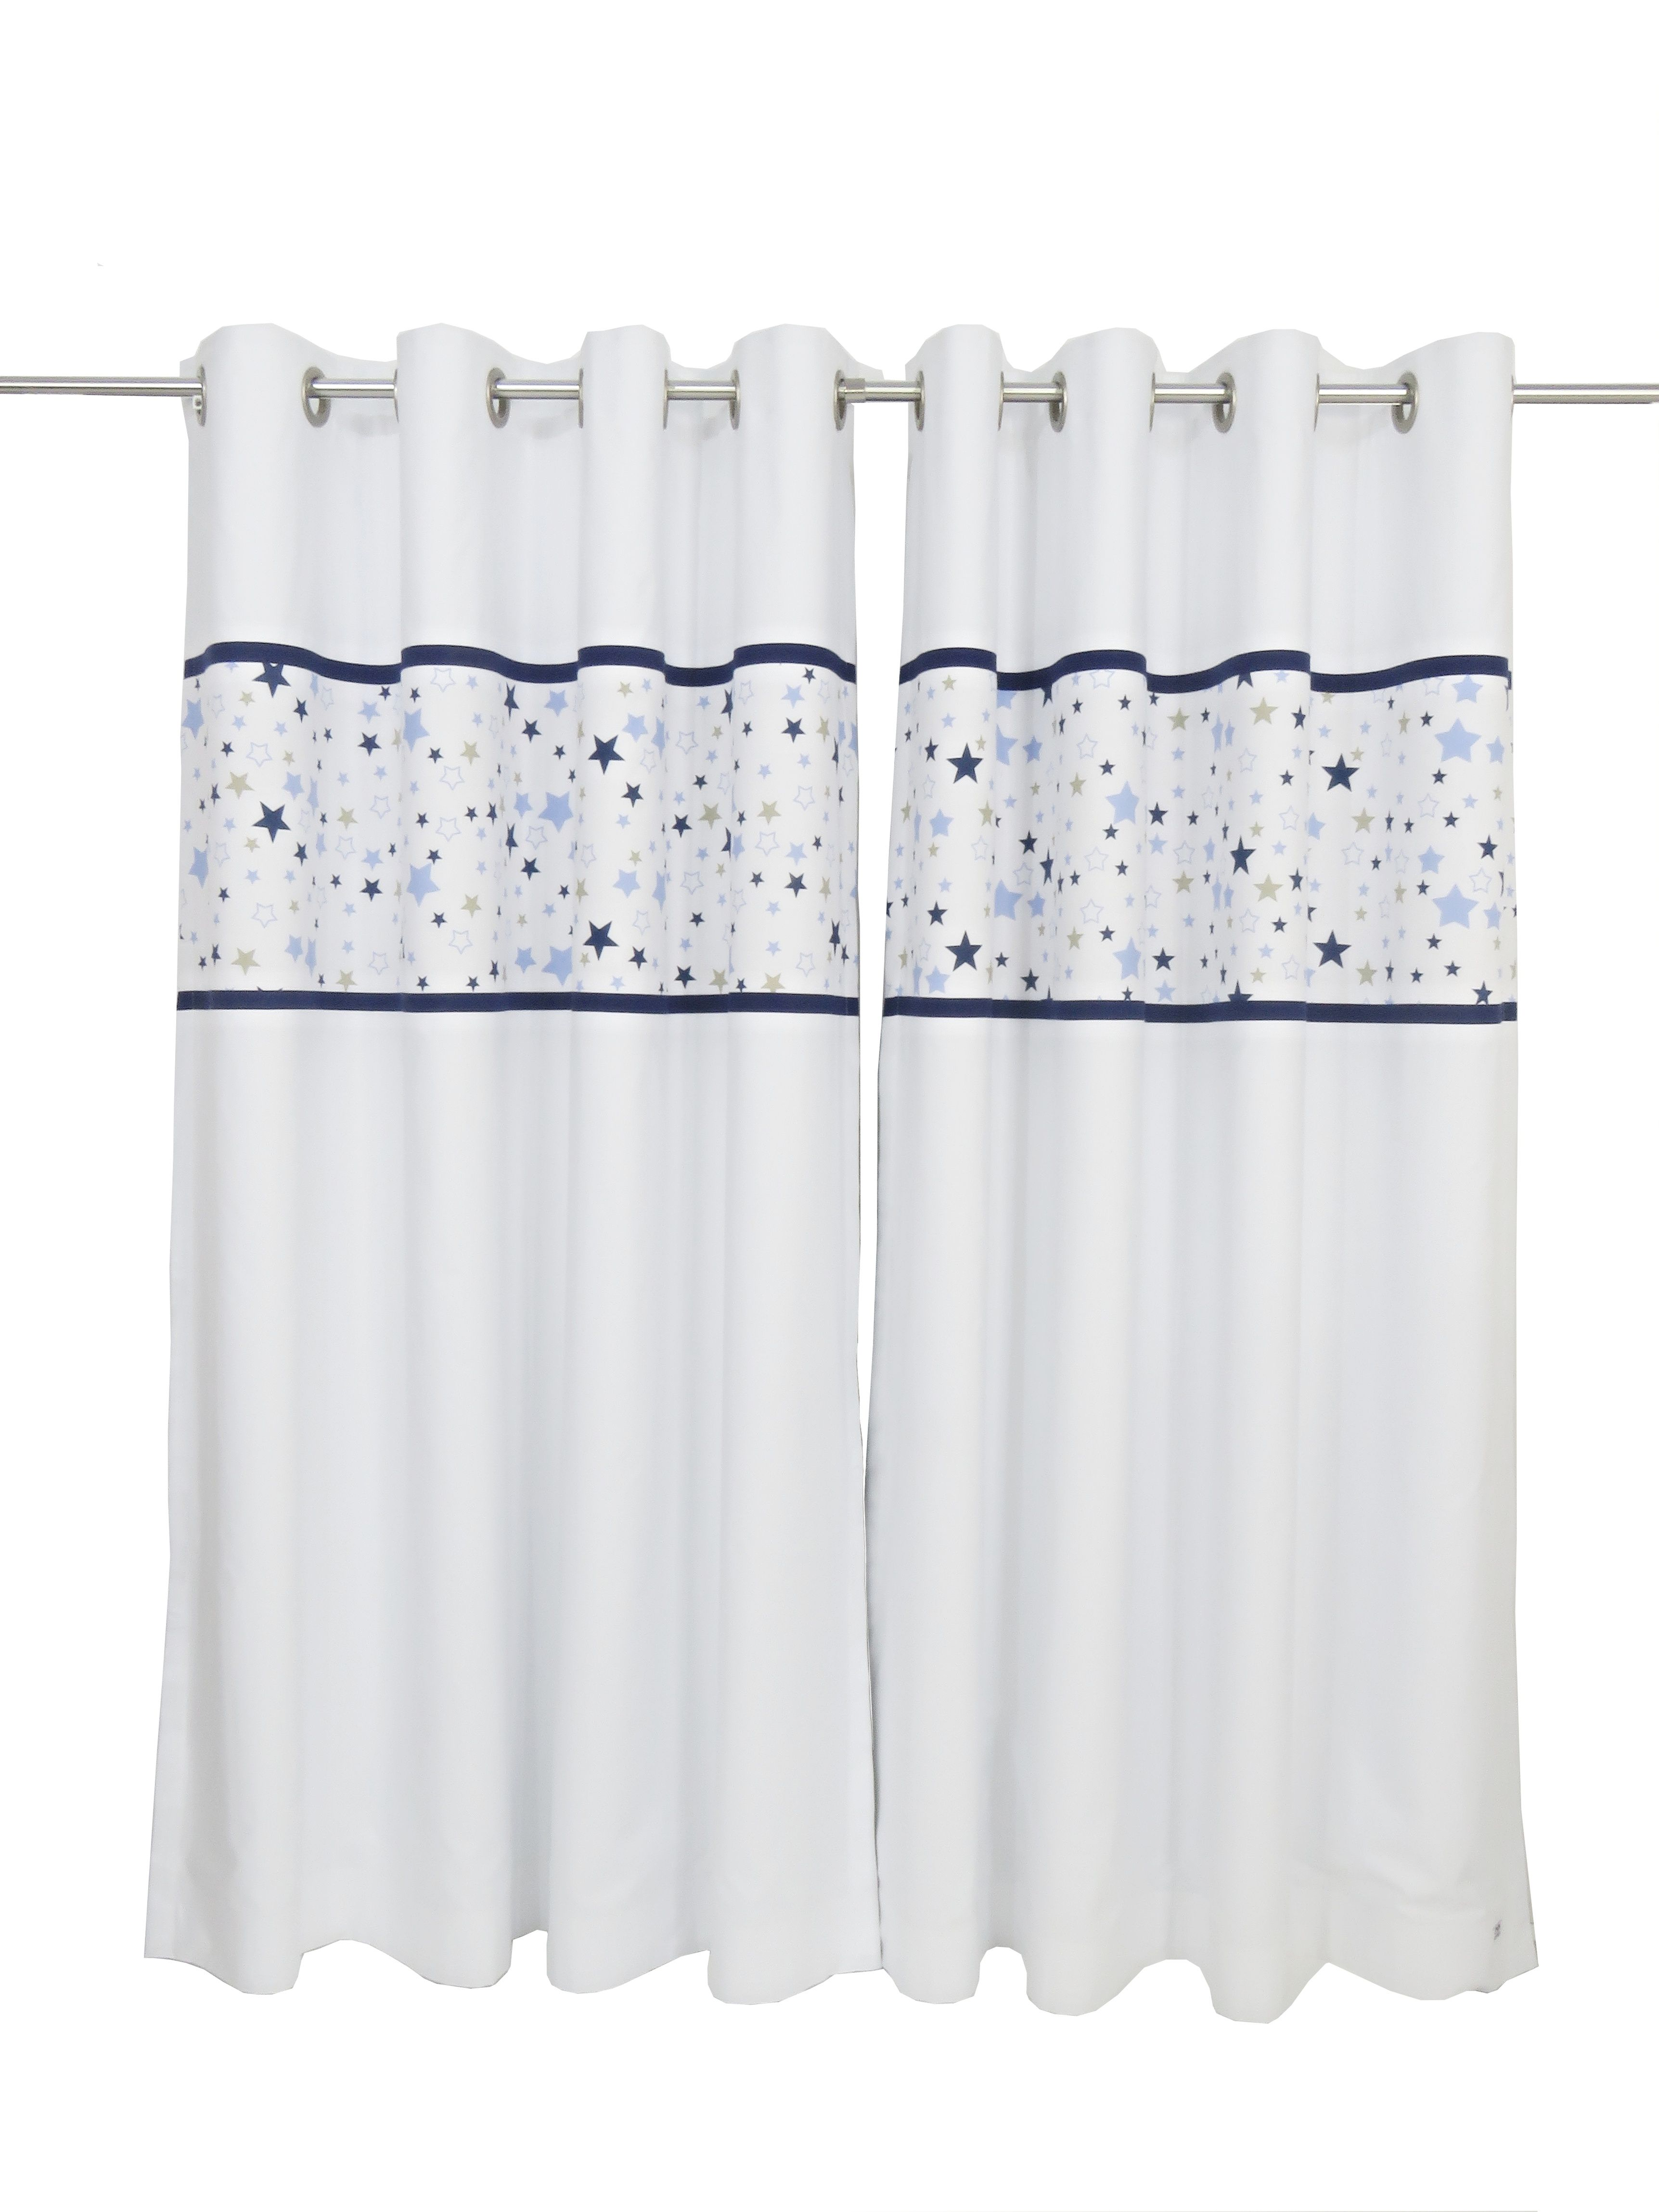 Airplane Mix Curtains 2 Panel Set for Decor 5 Sizes Available Window Drapes